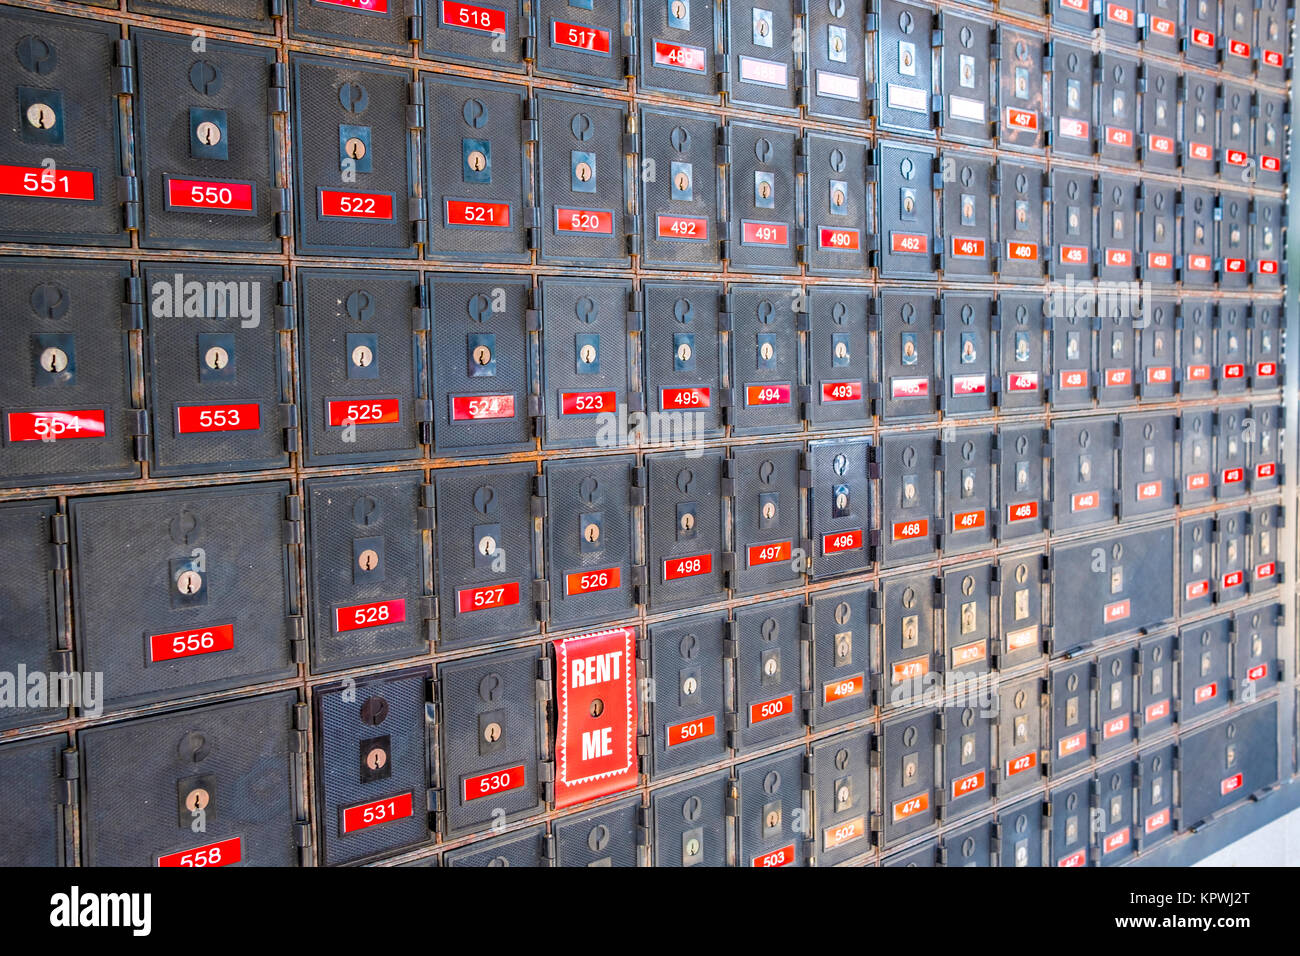 Australia Post secure private mailboxes located outside the post office - Stock Image